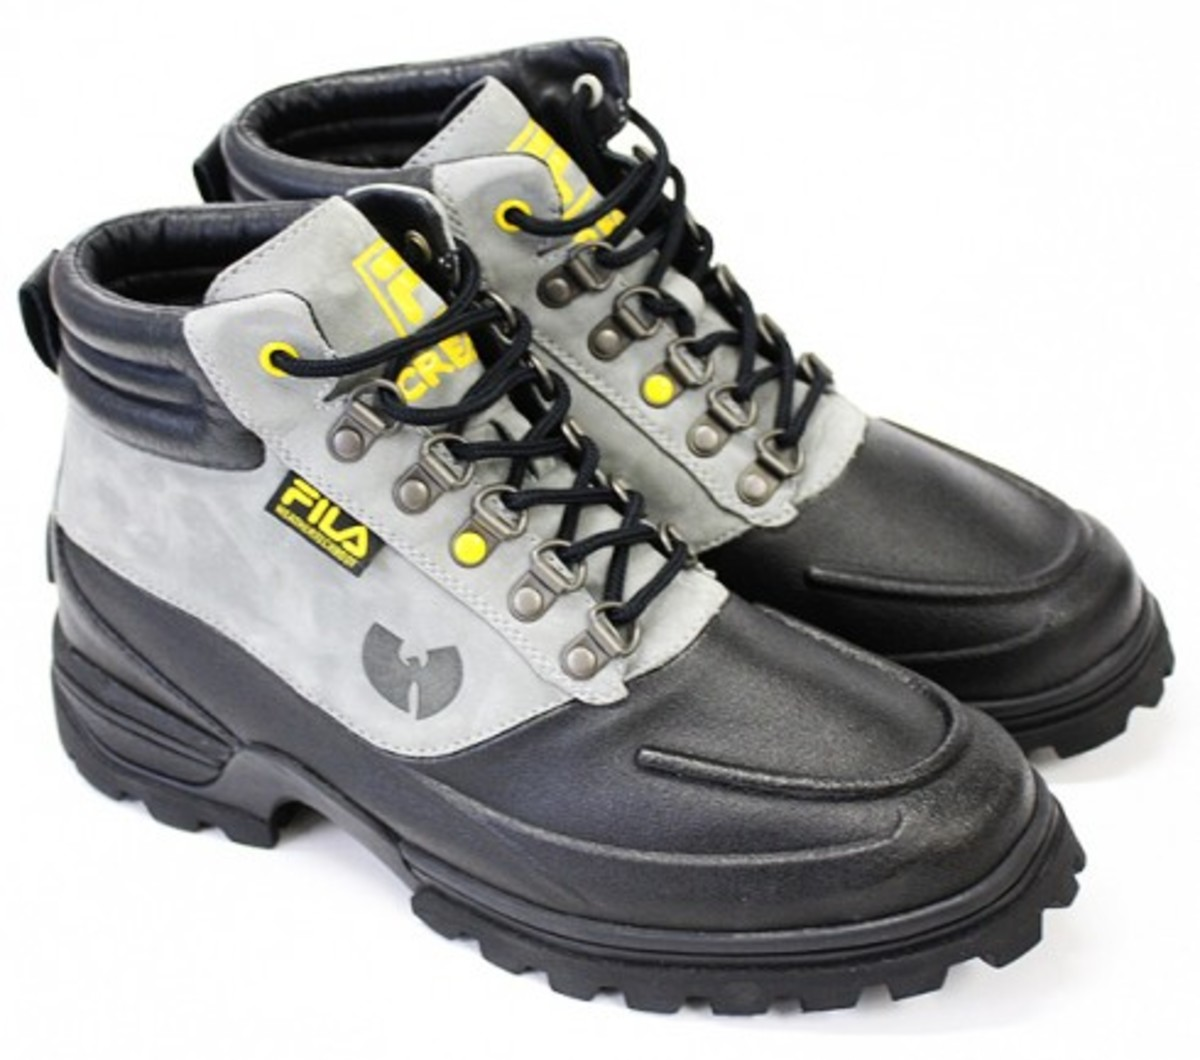 FILA x Wu-Tang Clan - Weather Tech Boot